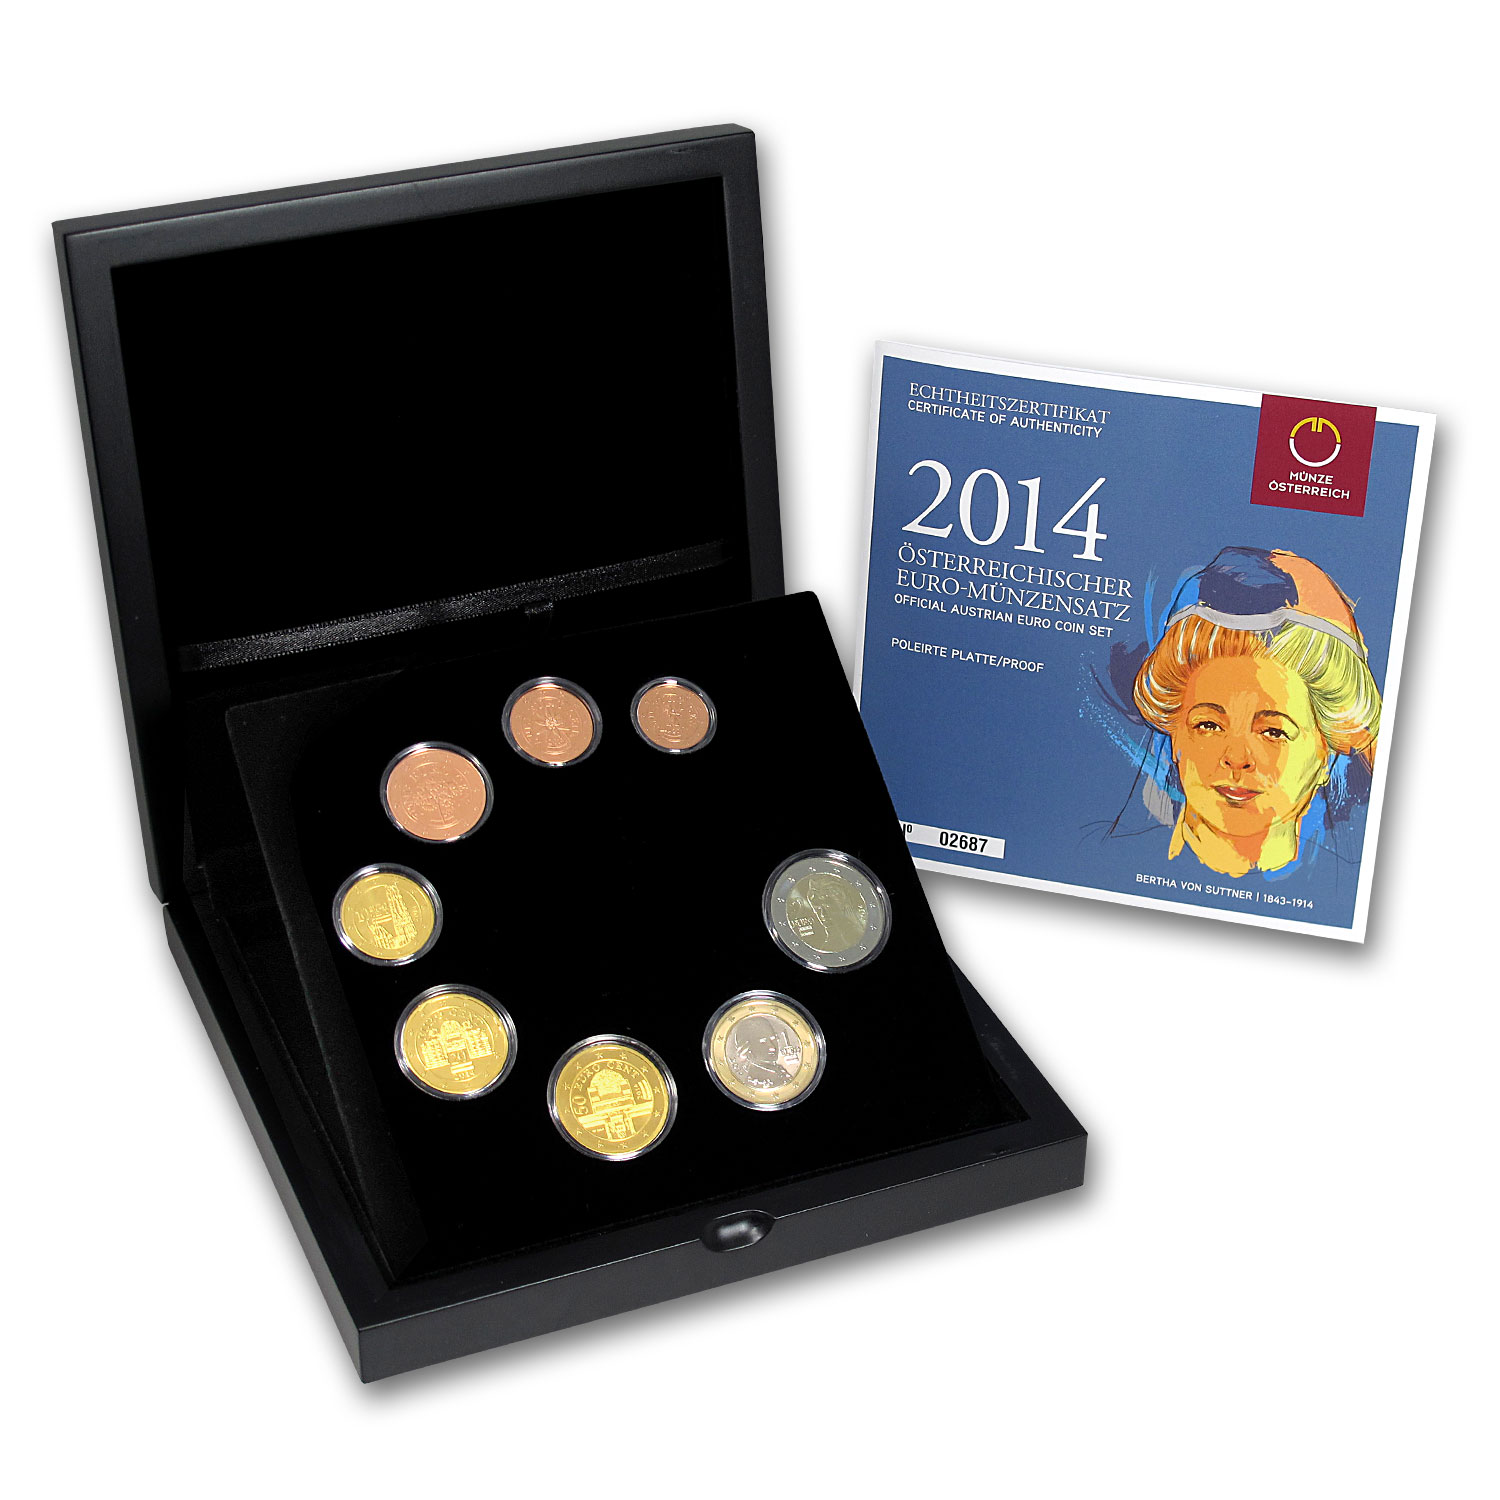 2014 Austria 8-Coin Bertha Von Suttner Mint Set